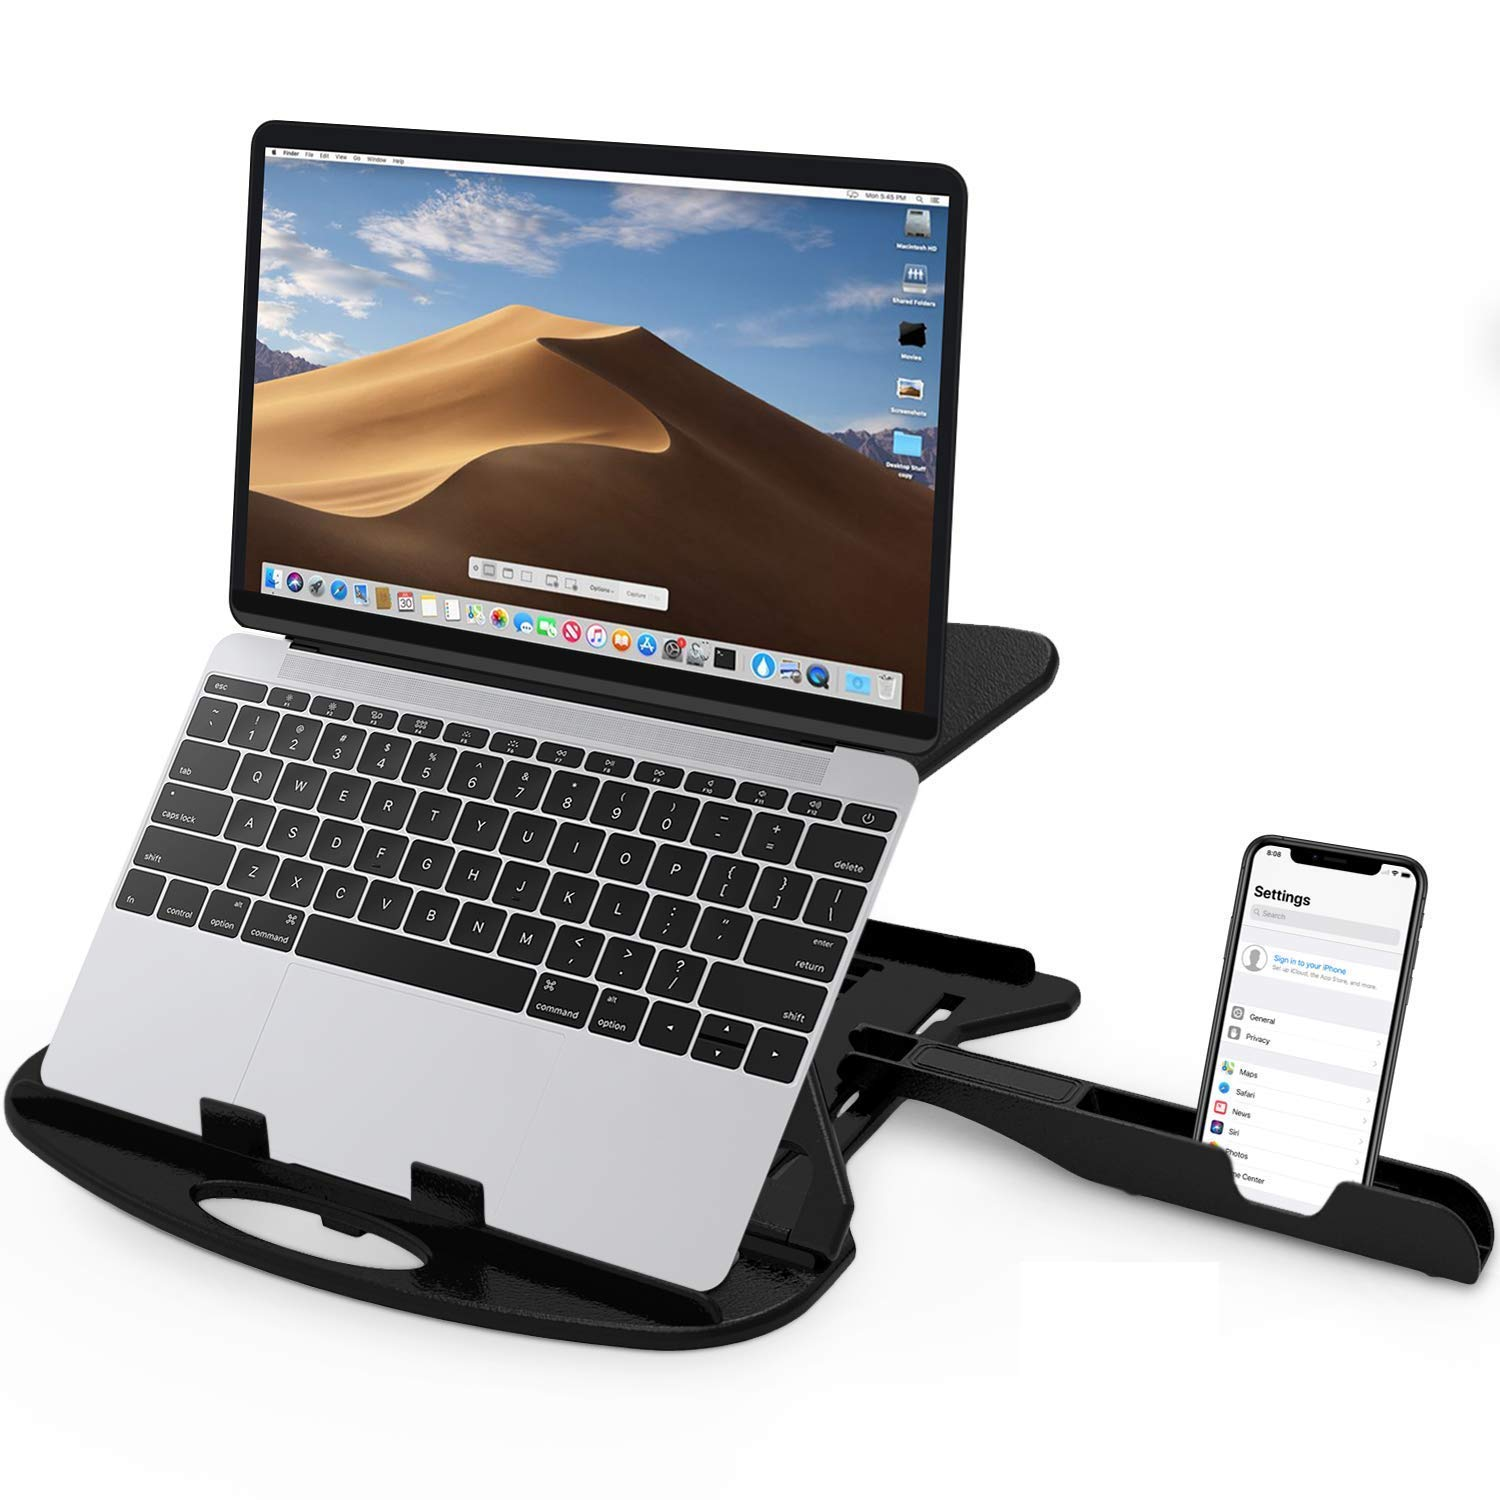 STRIFF Adjustable Laptop Stand with phone stand